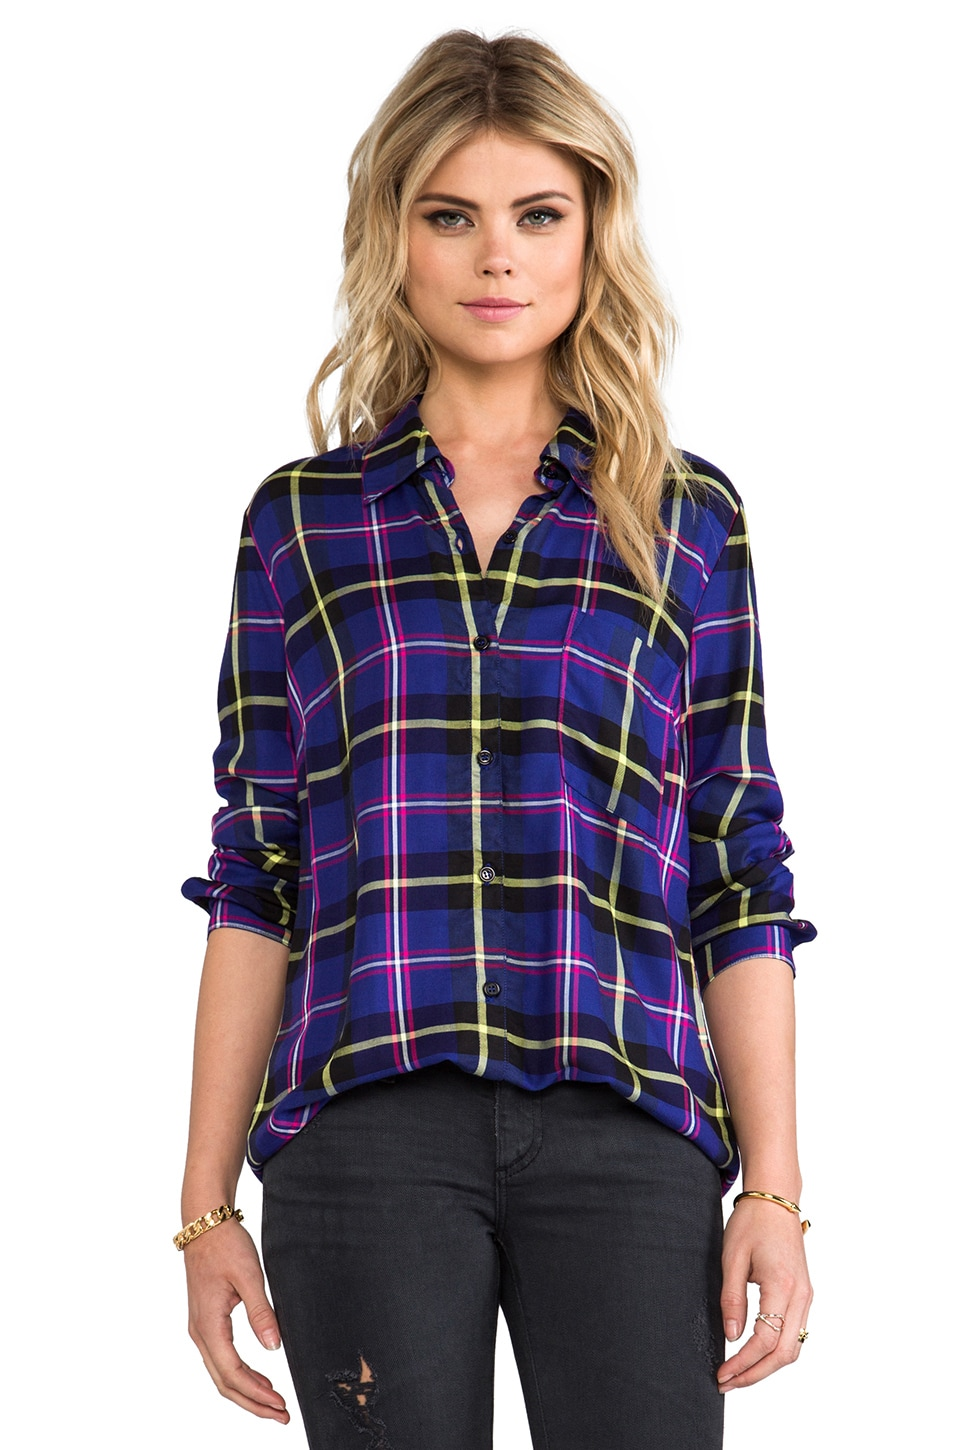 Splendid Snowpeak Plaid Button Down in Blue Jewel